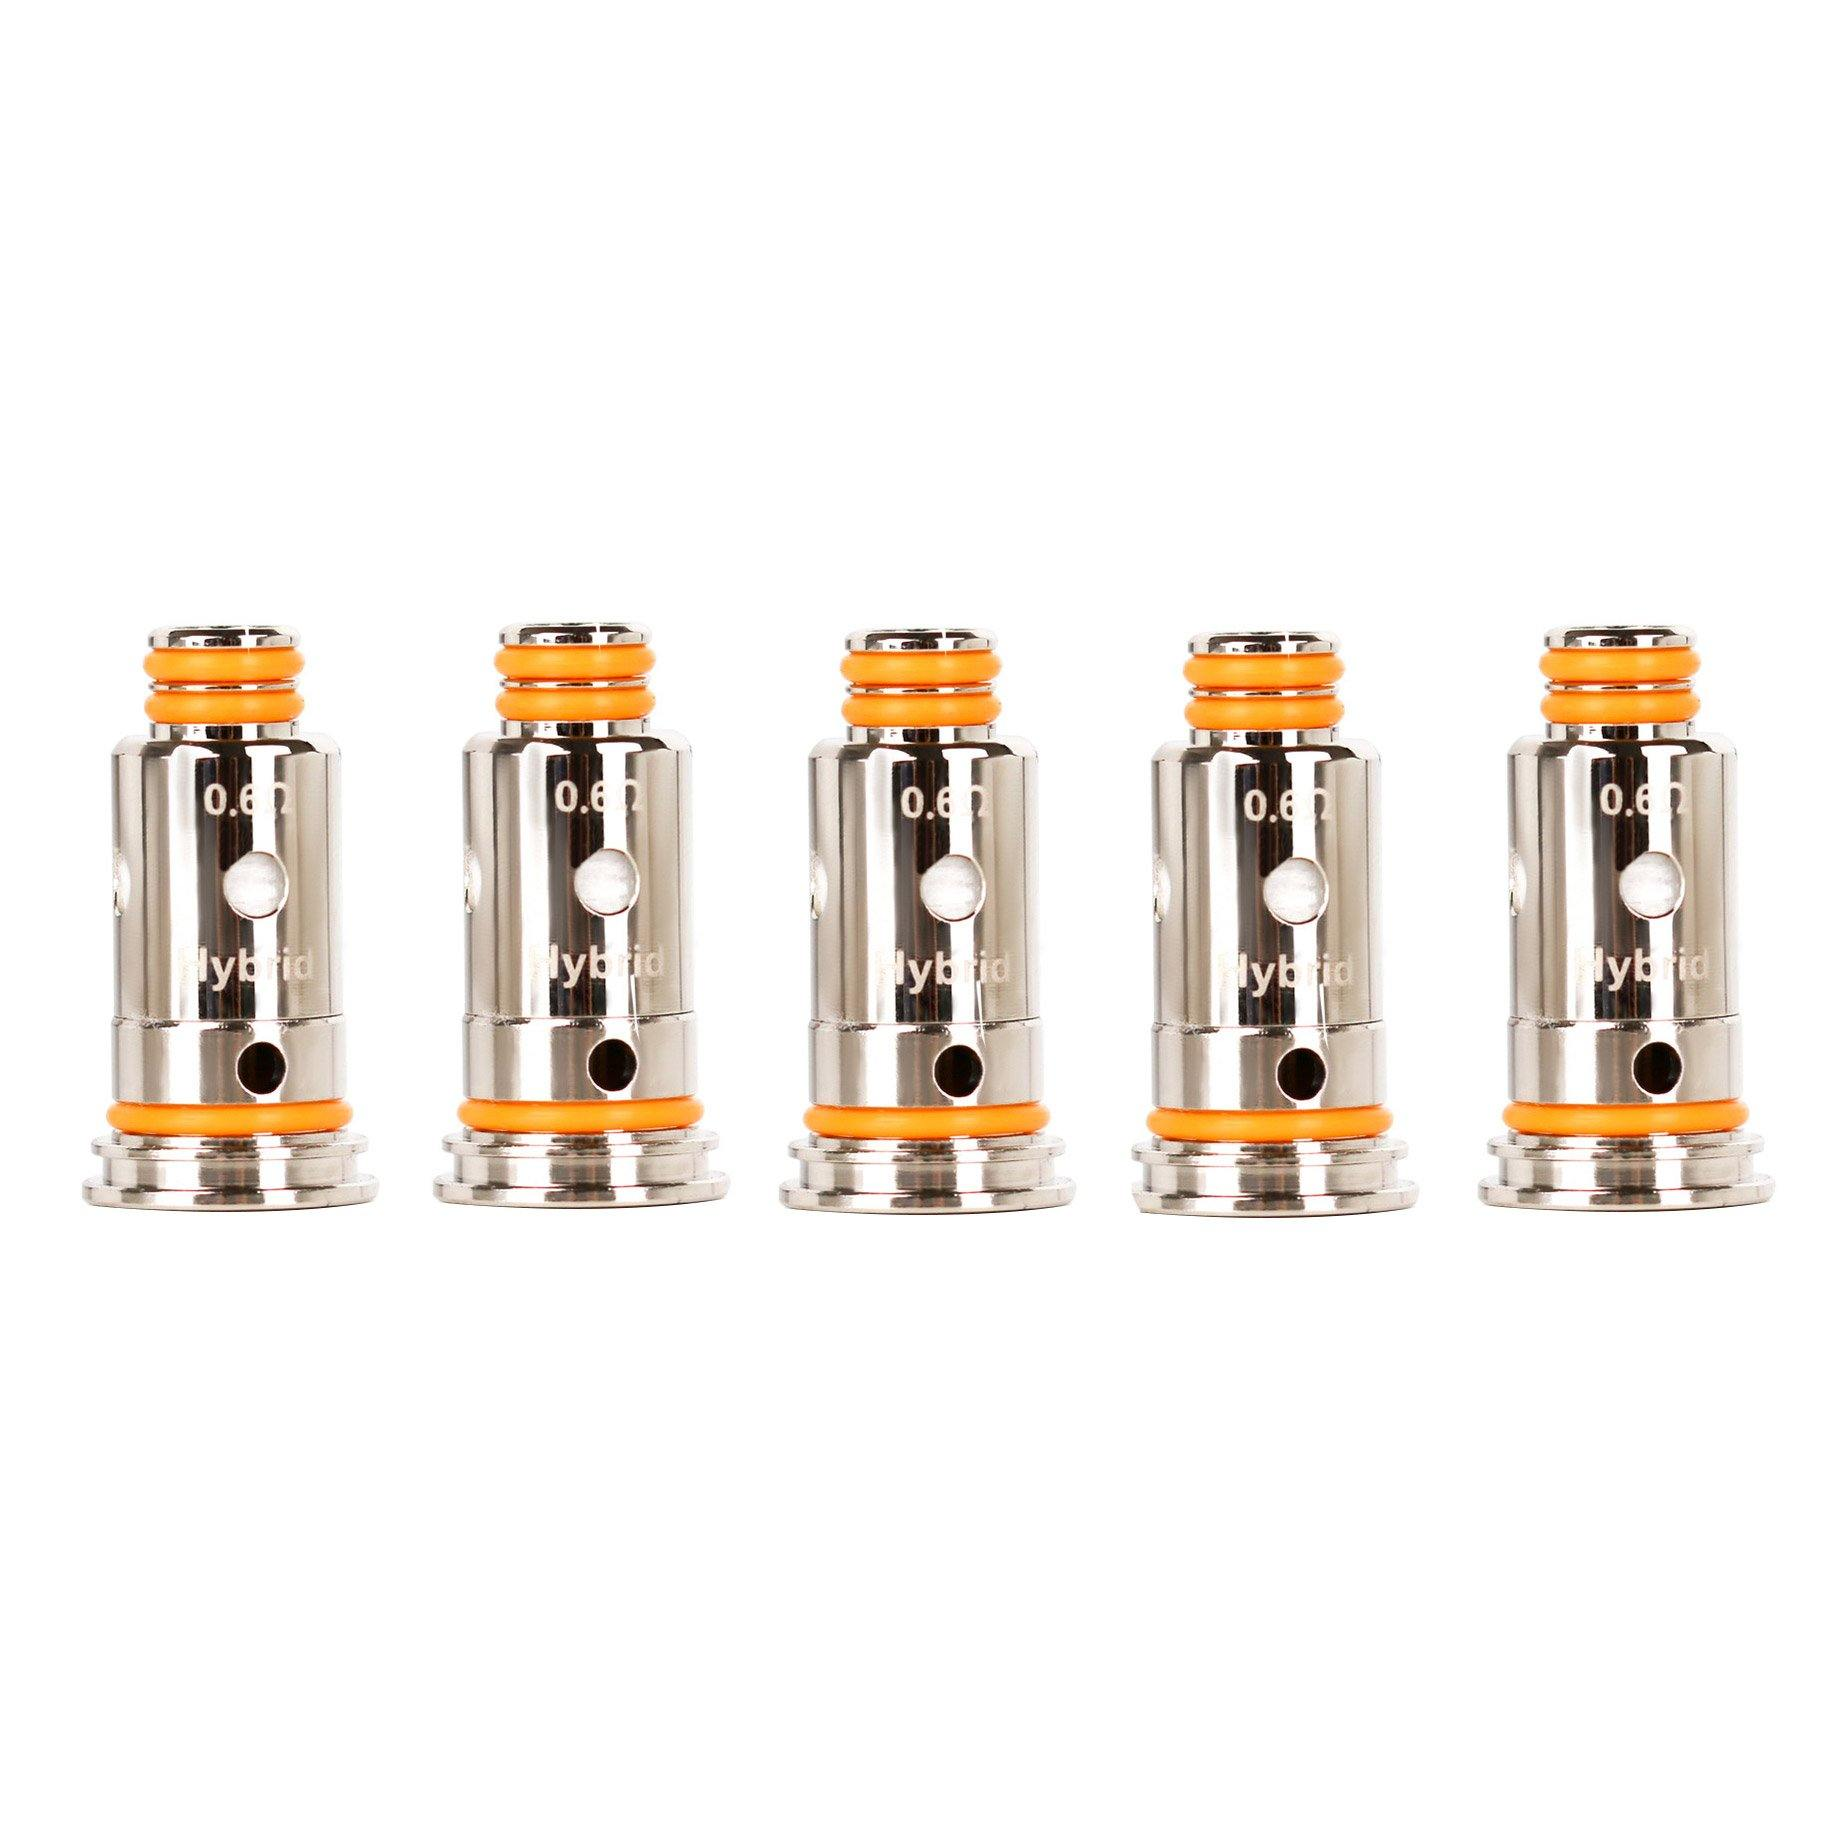 5Pcs/Pack Geekvape Aegis Pod Kit Replacement Coil